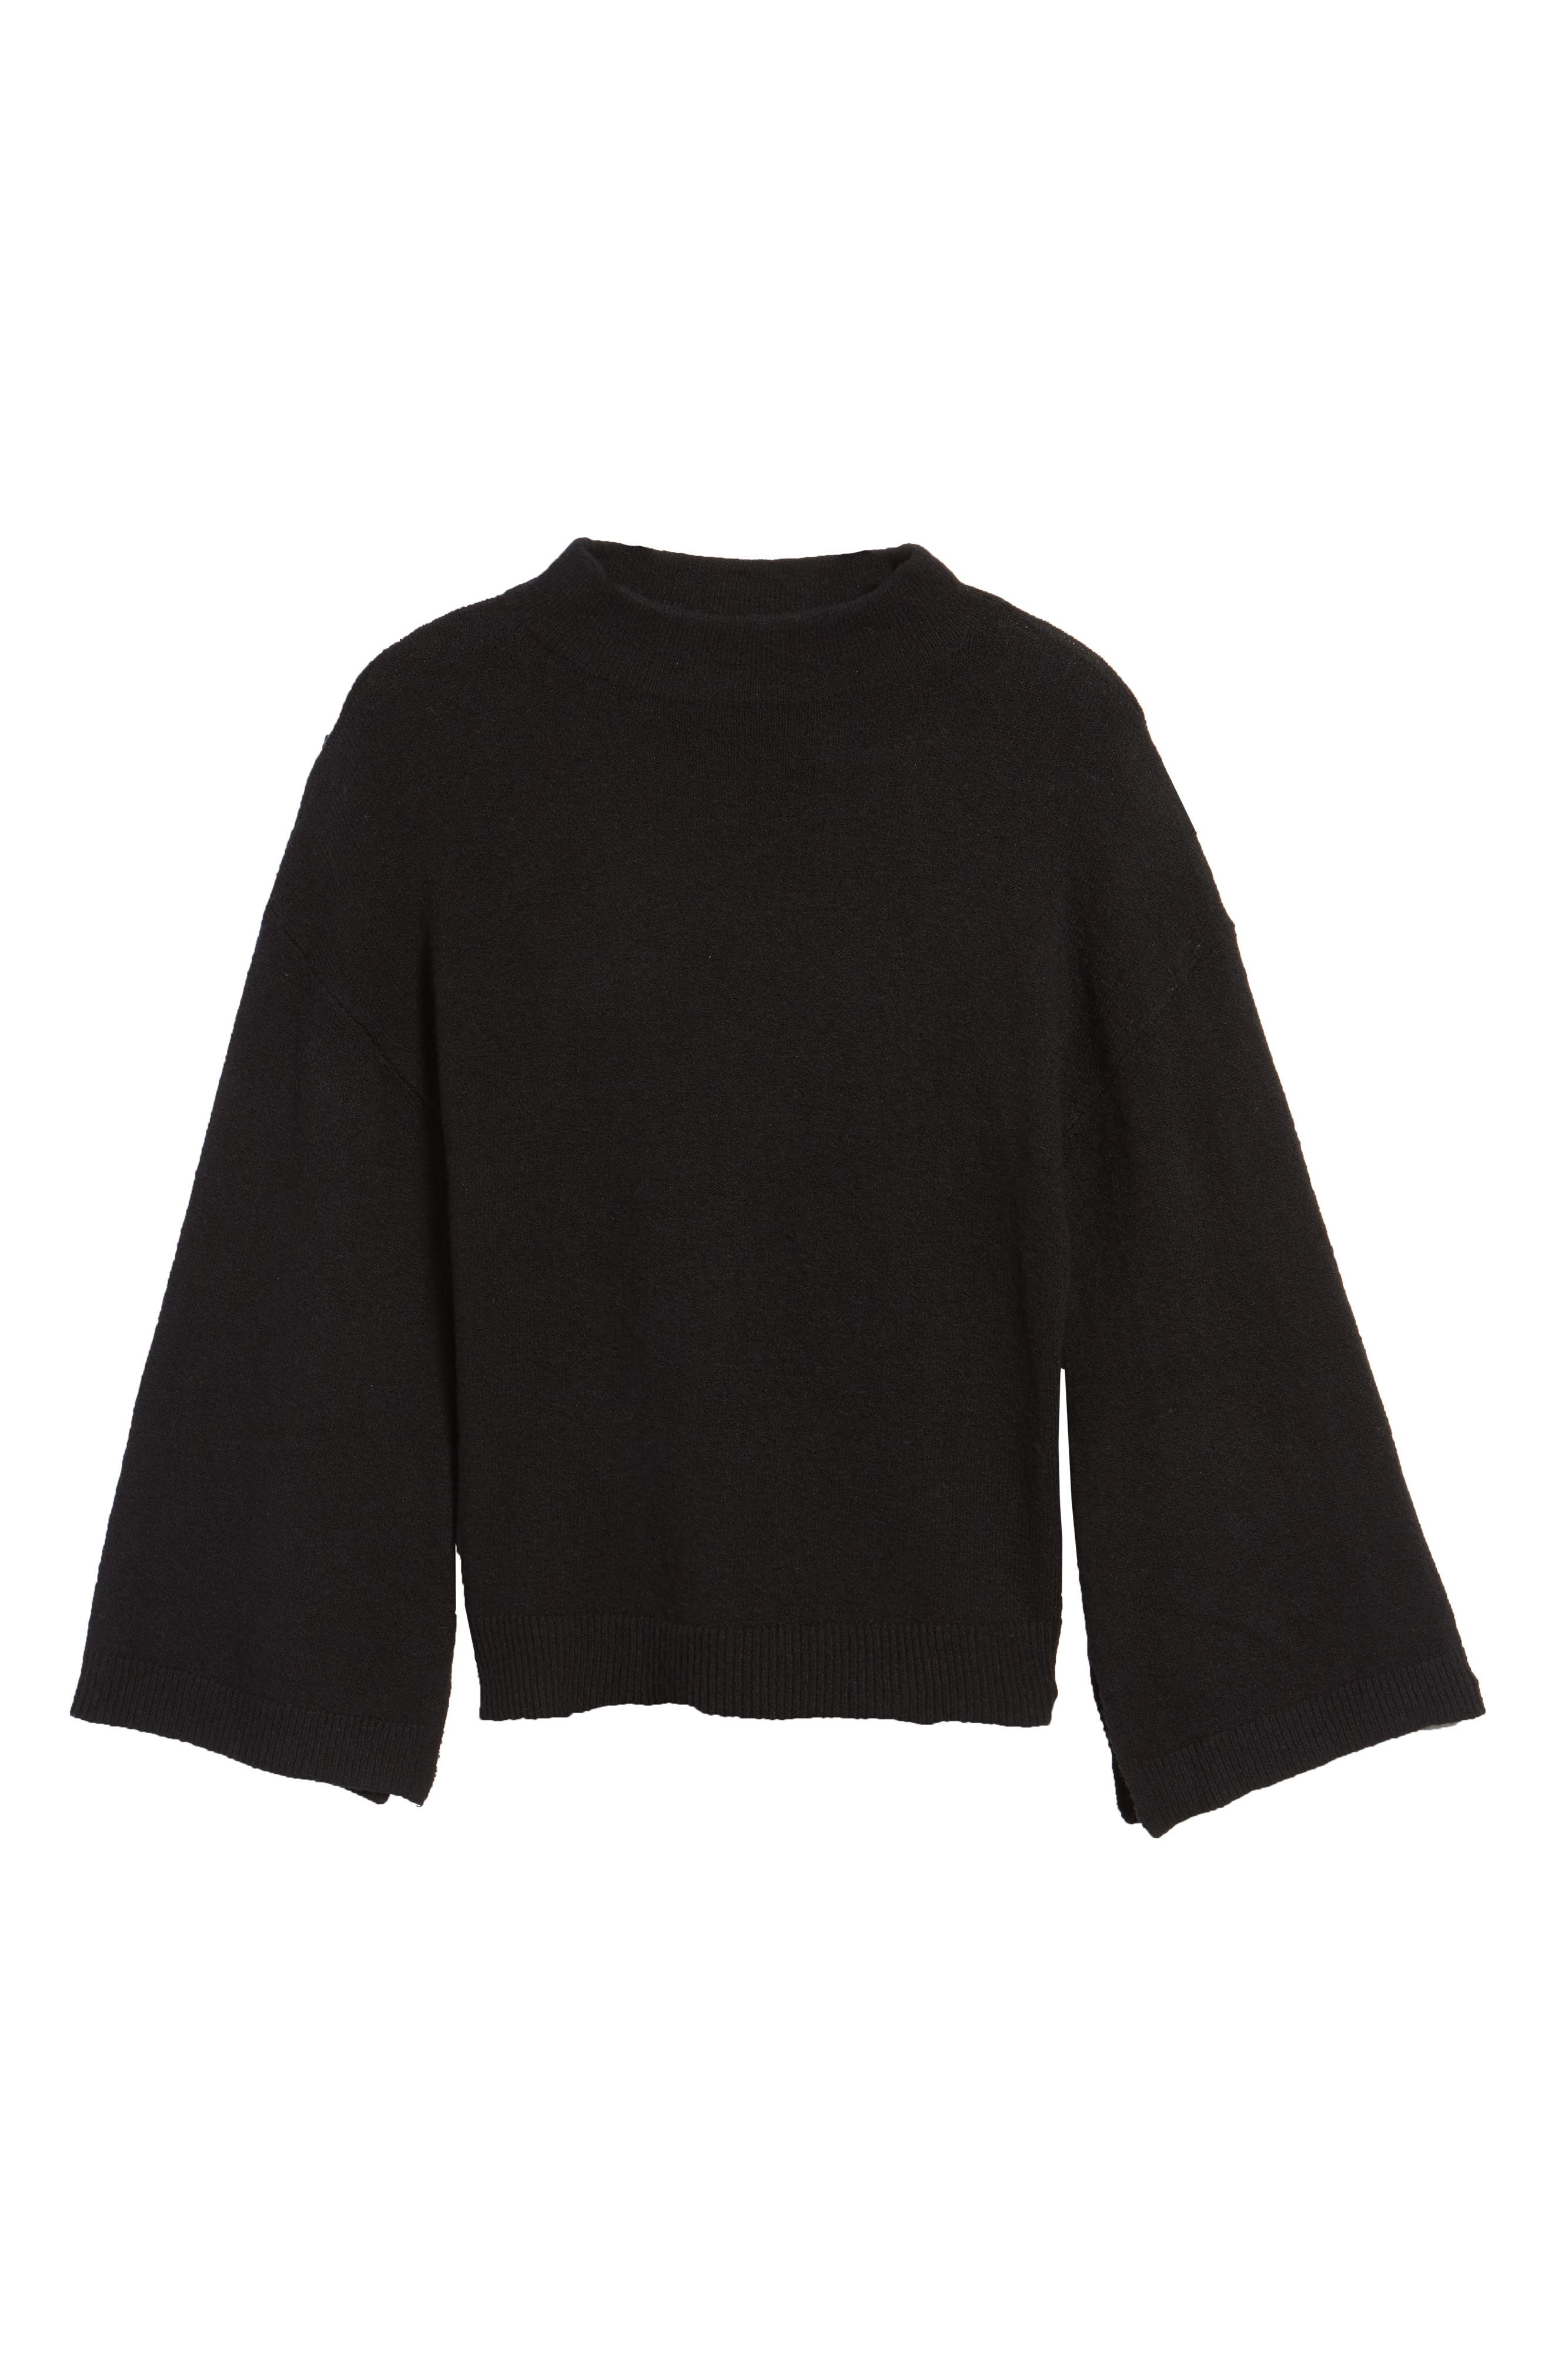 Dolman Sleeve Sweater,                             Alternate thumbnail 6, color,                             001